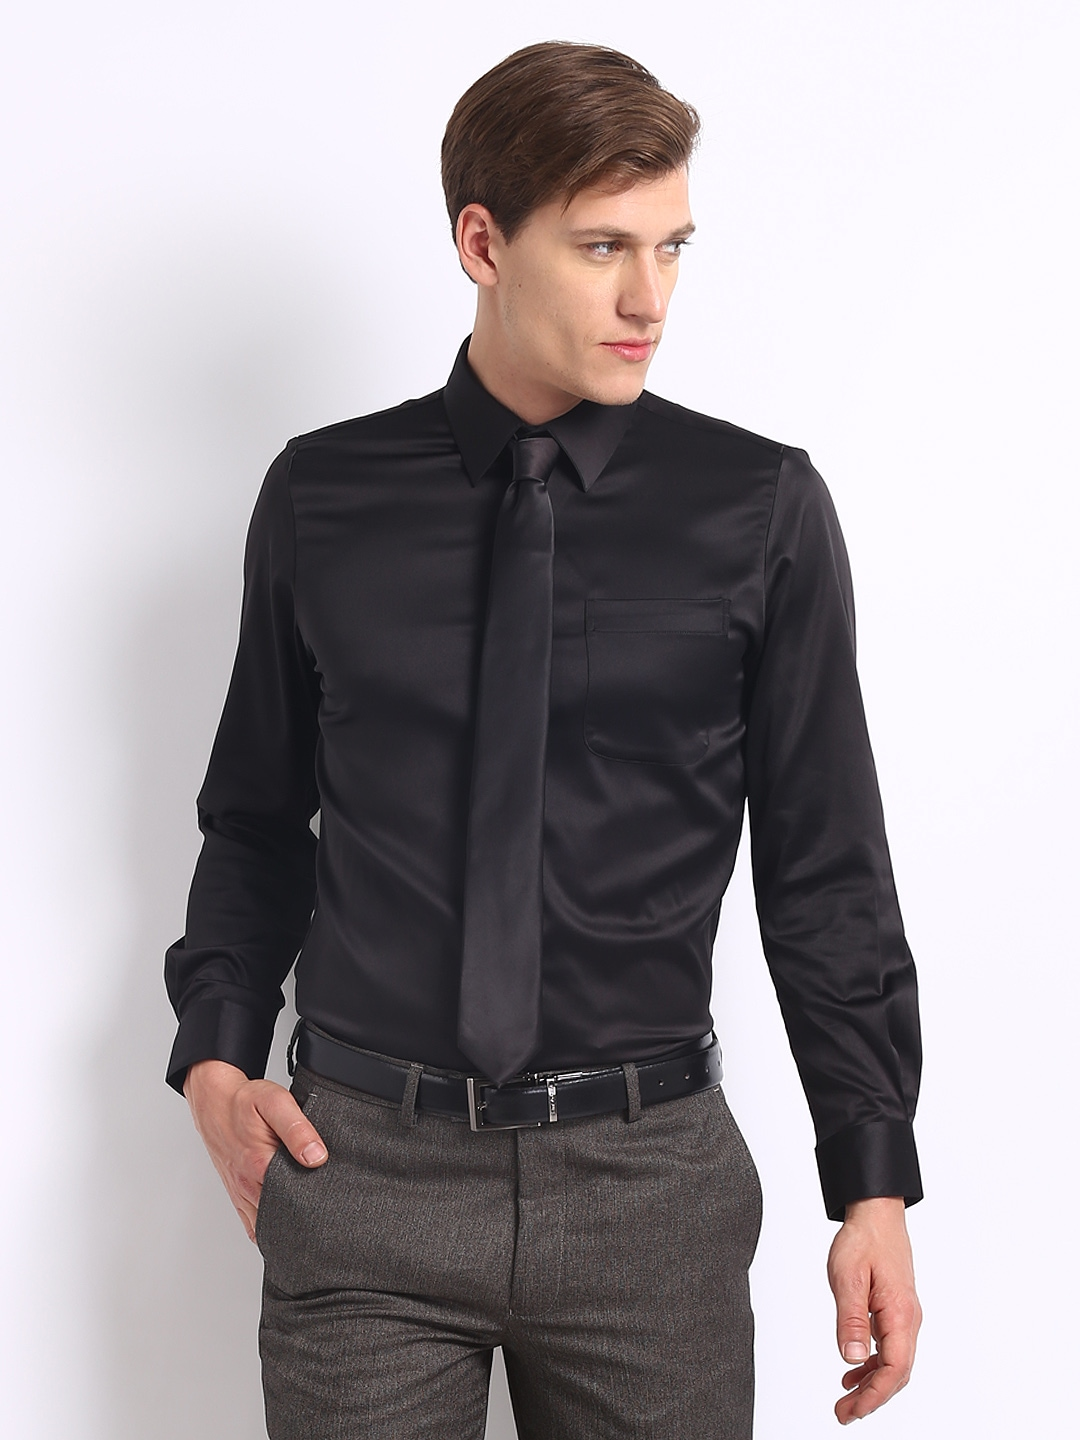 Black shirt black tie artee shirt for Black tuxedo shirt for men